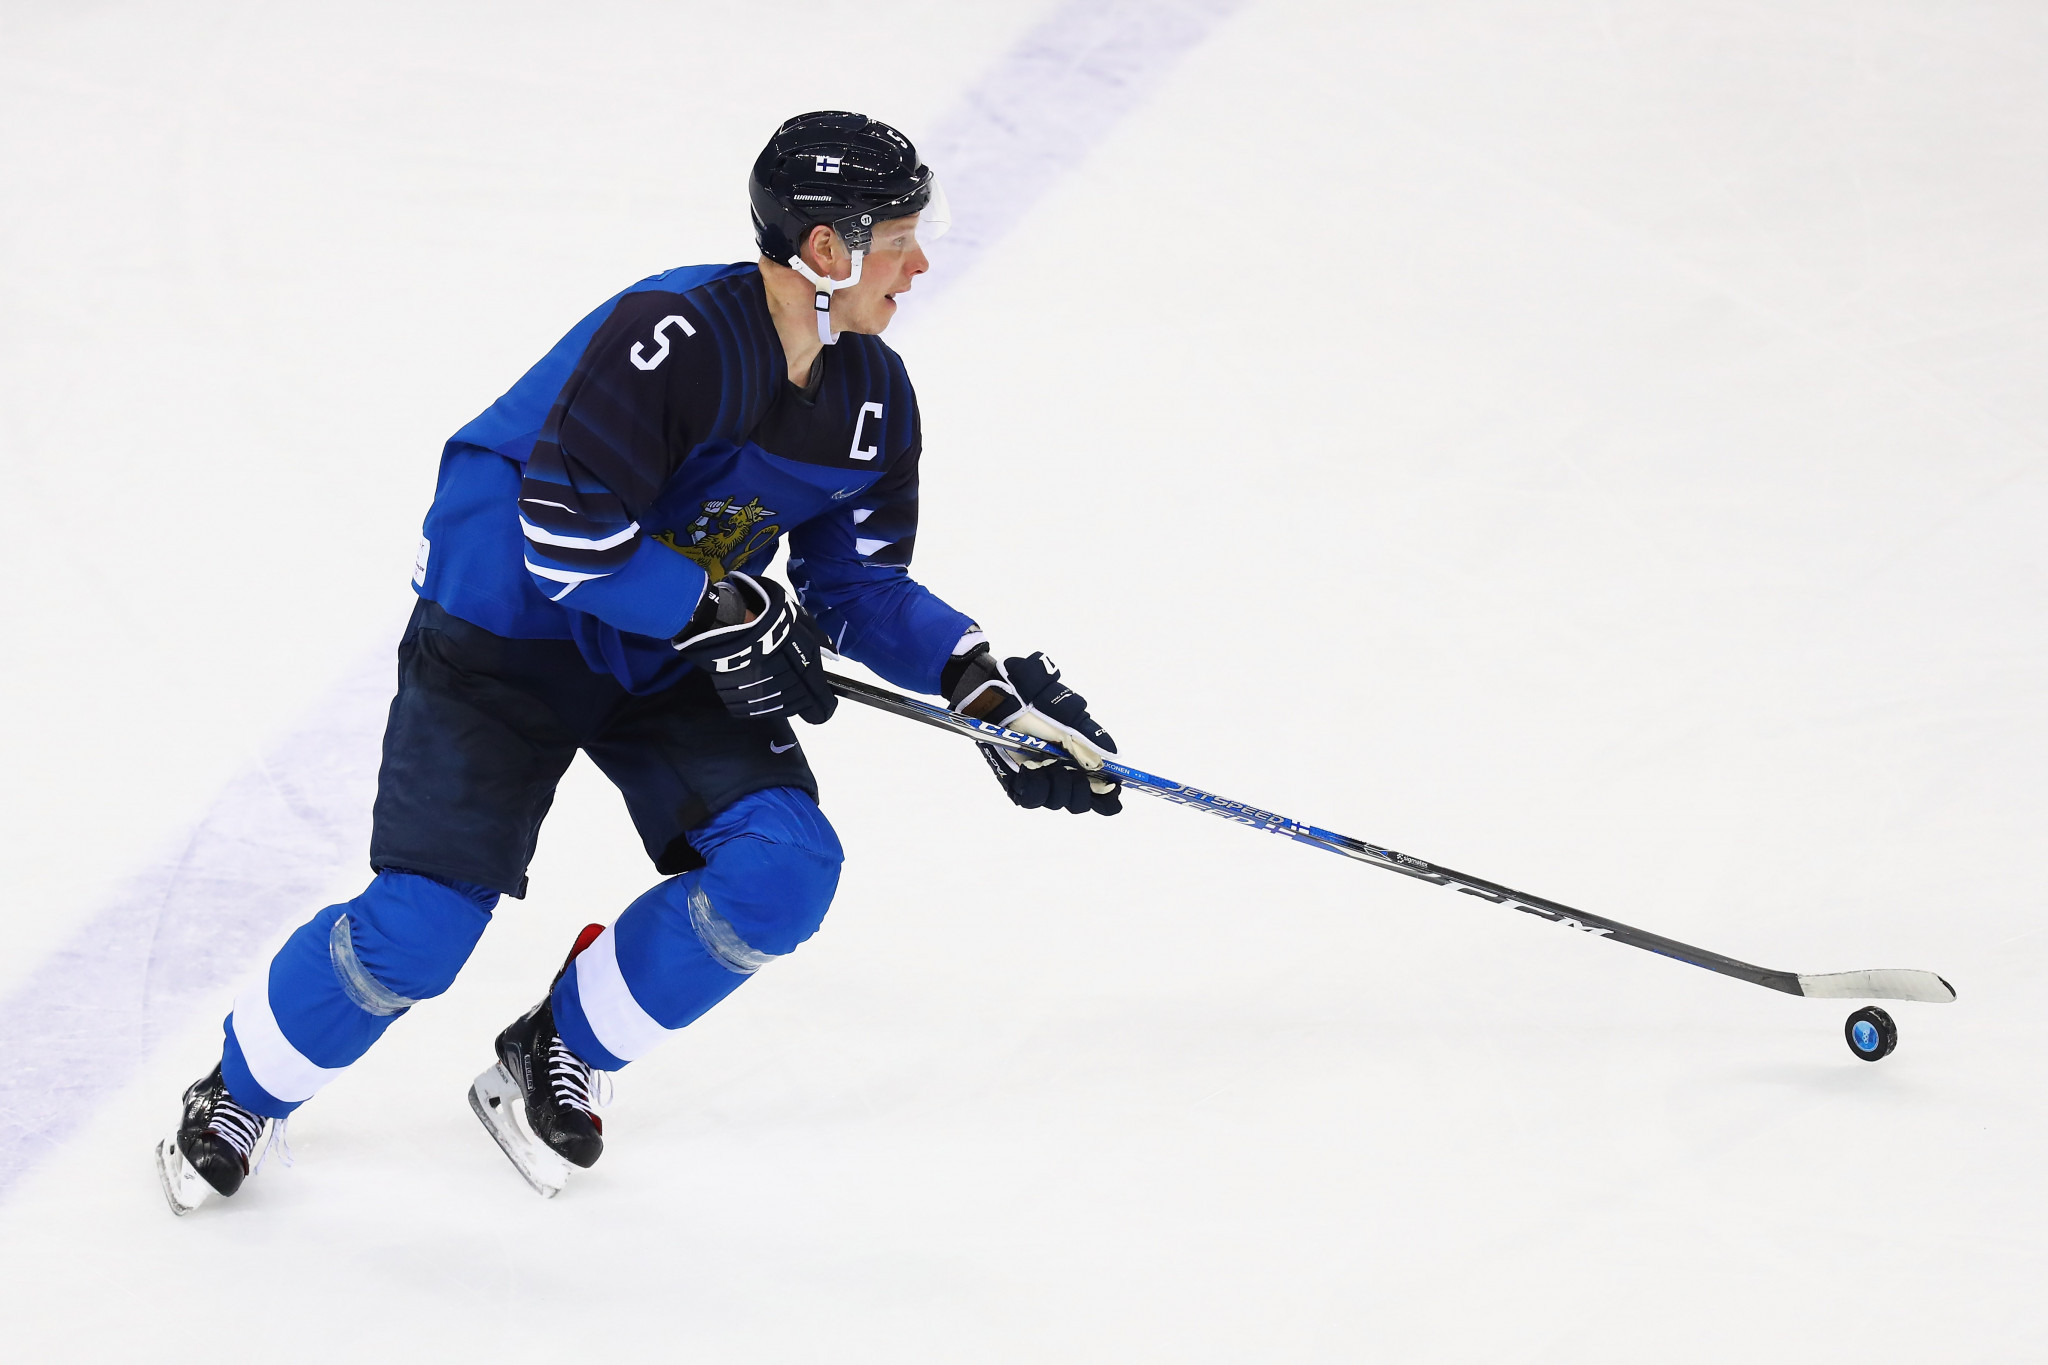 Finland's triple Olympic ice hockey medallist Lasse Kukkonen has announced his retirement from the sport ©Getty Images